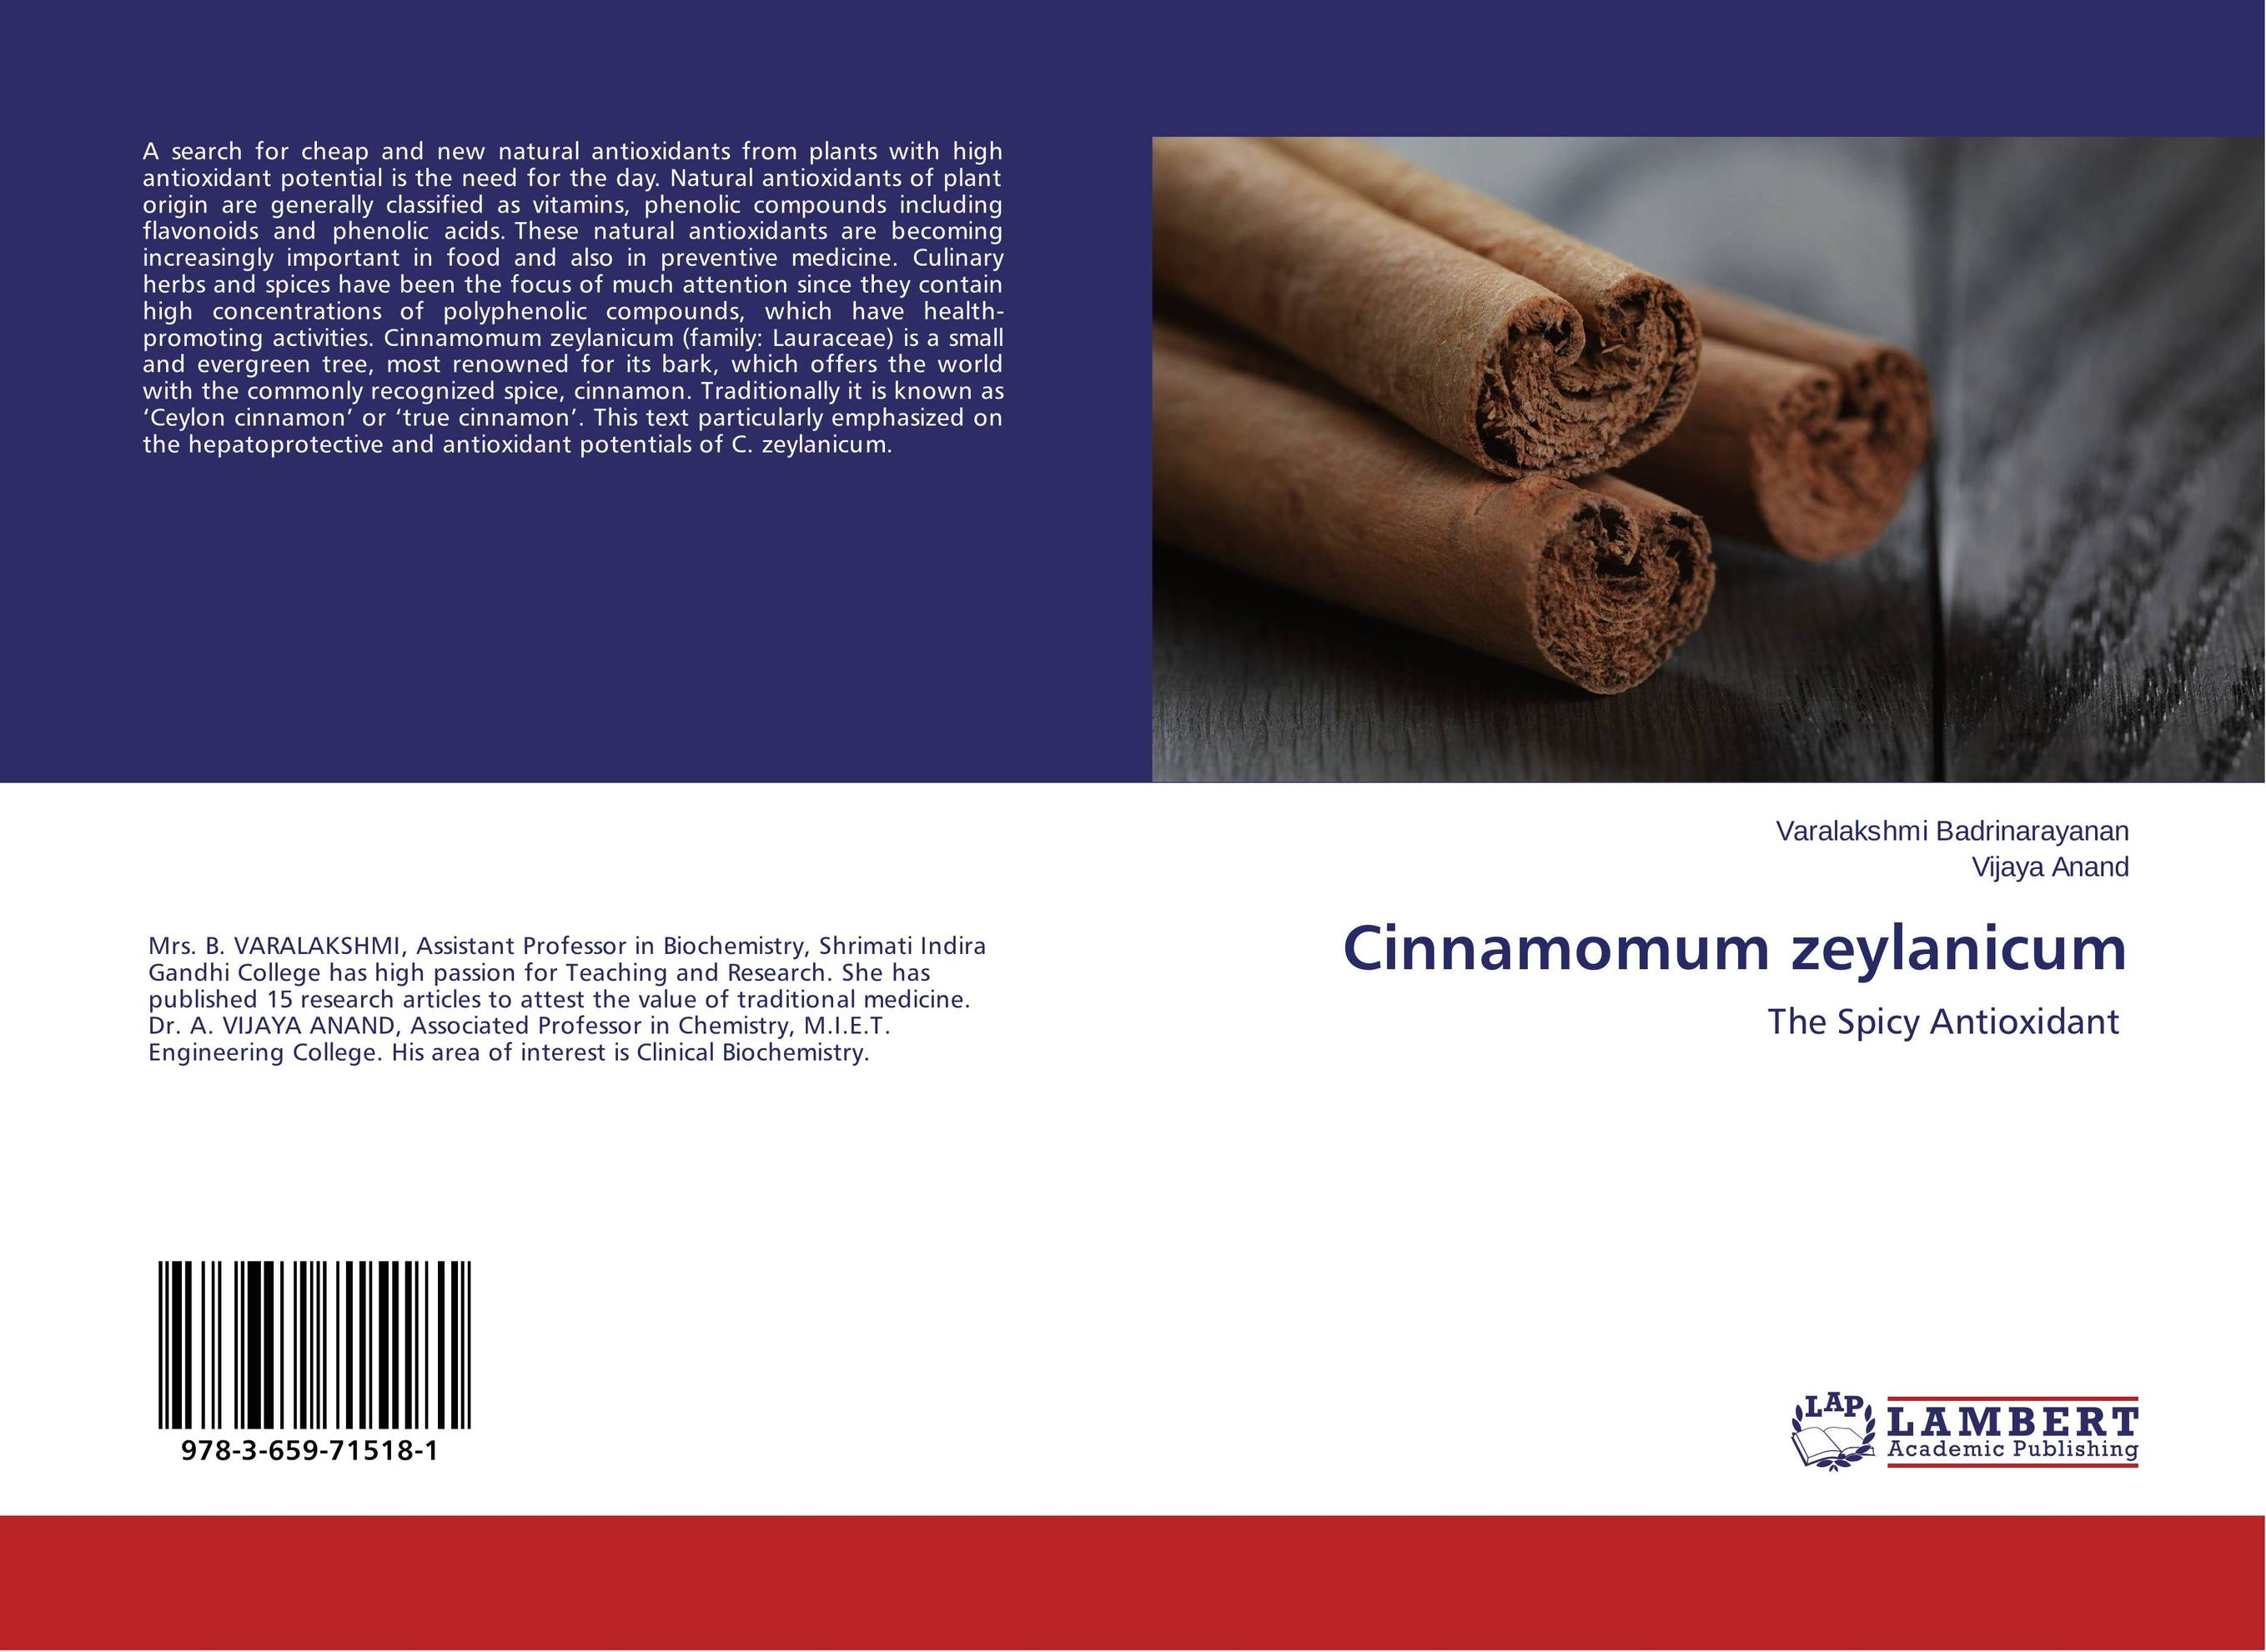 Cinnamomum zeylanicum discovery of natural antioxidants from sudanese medicinal plants